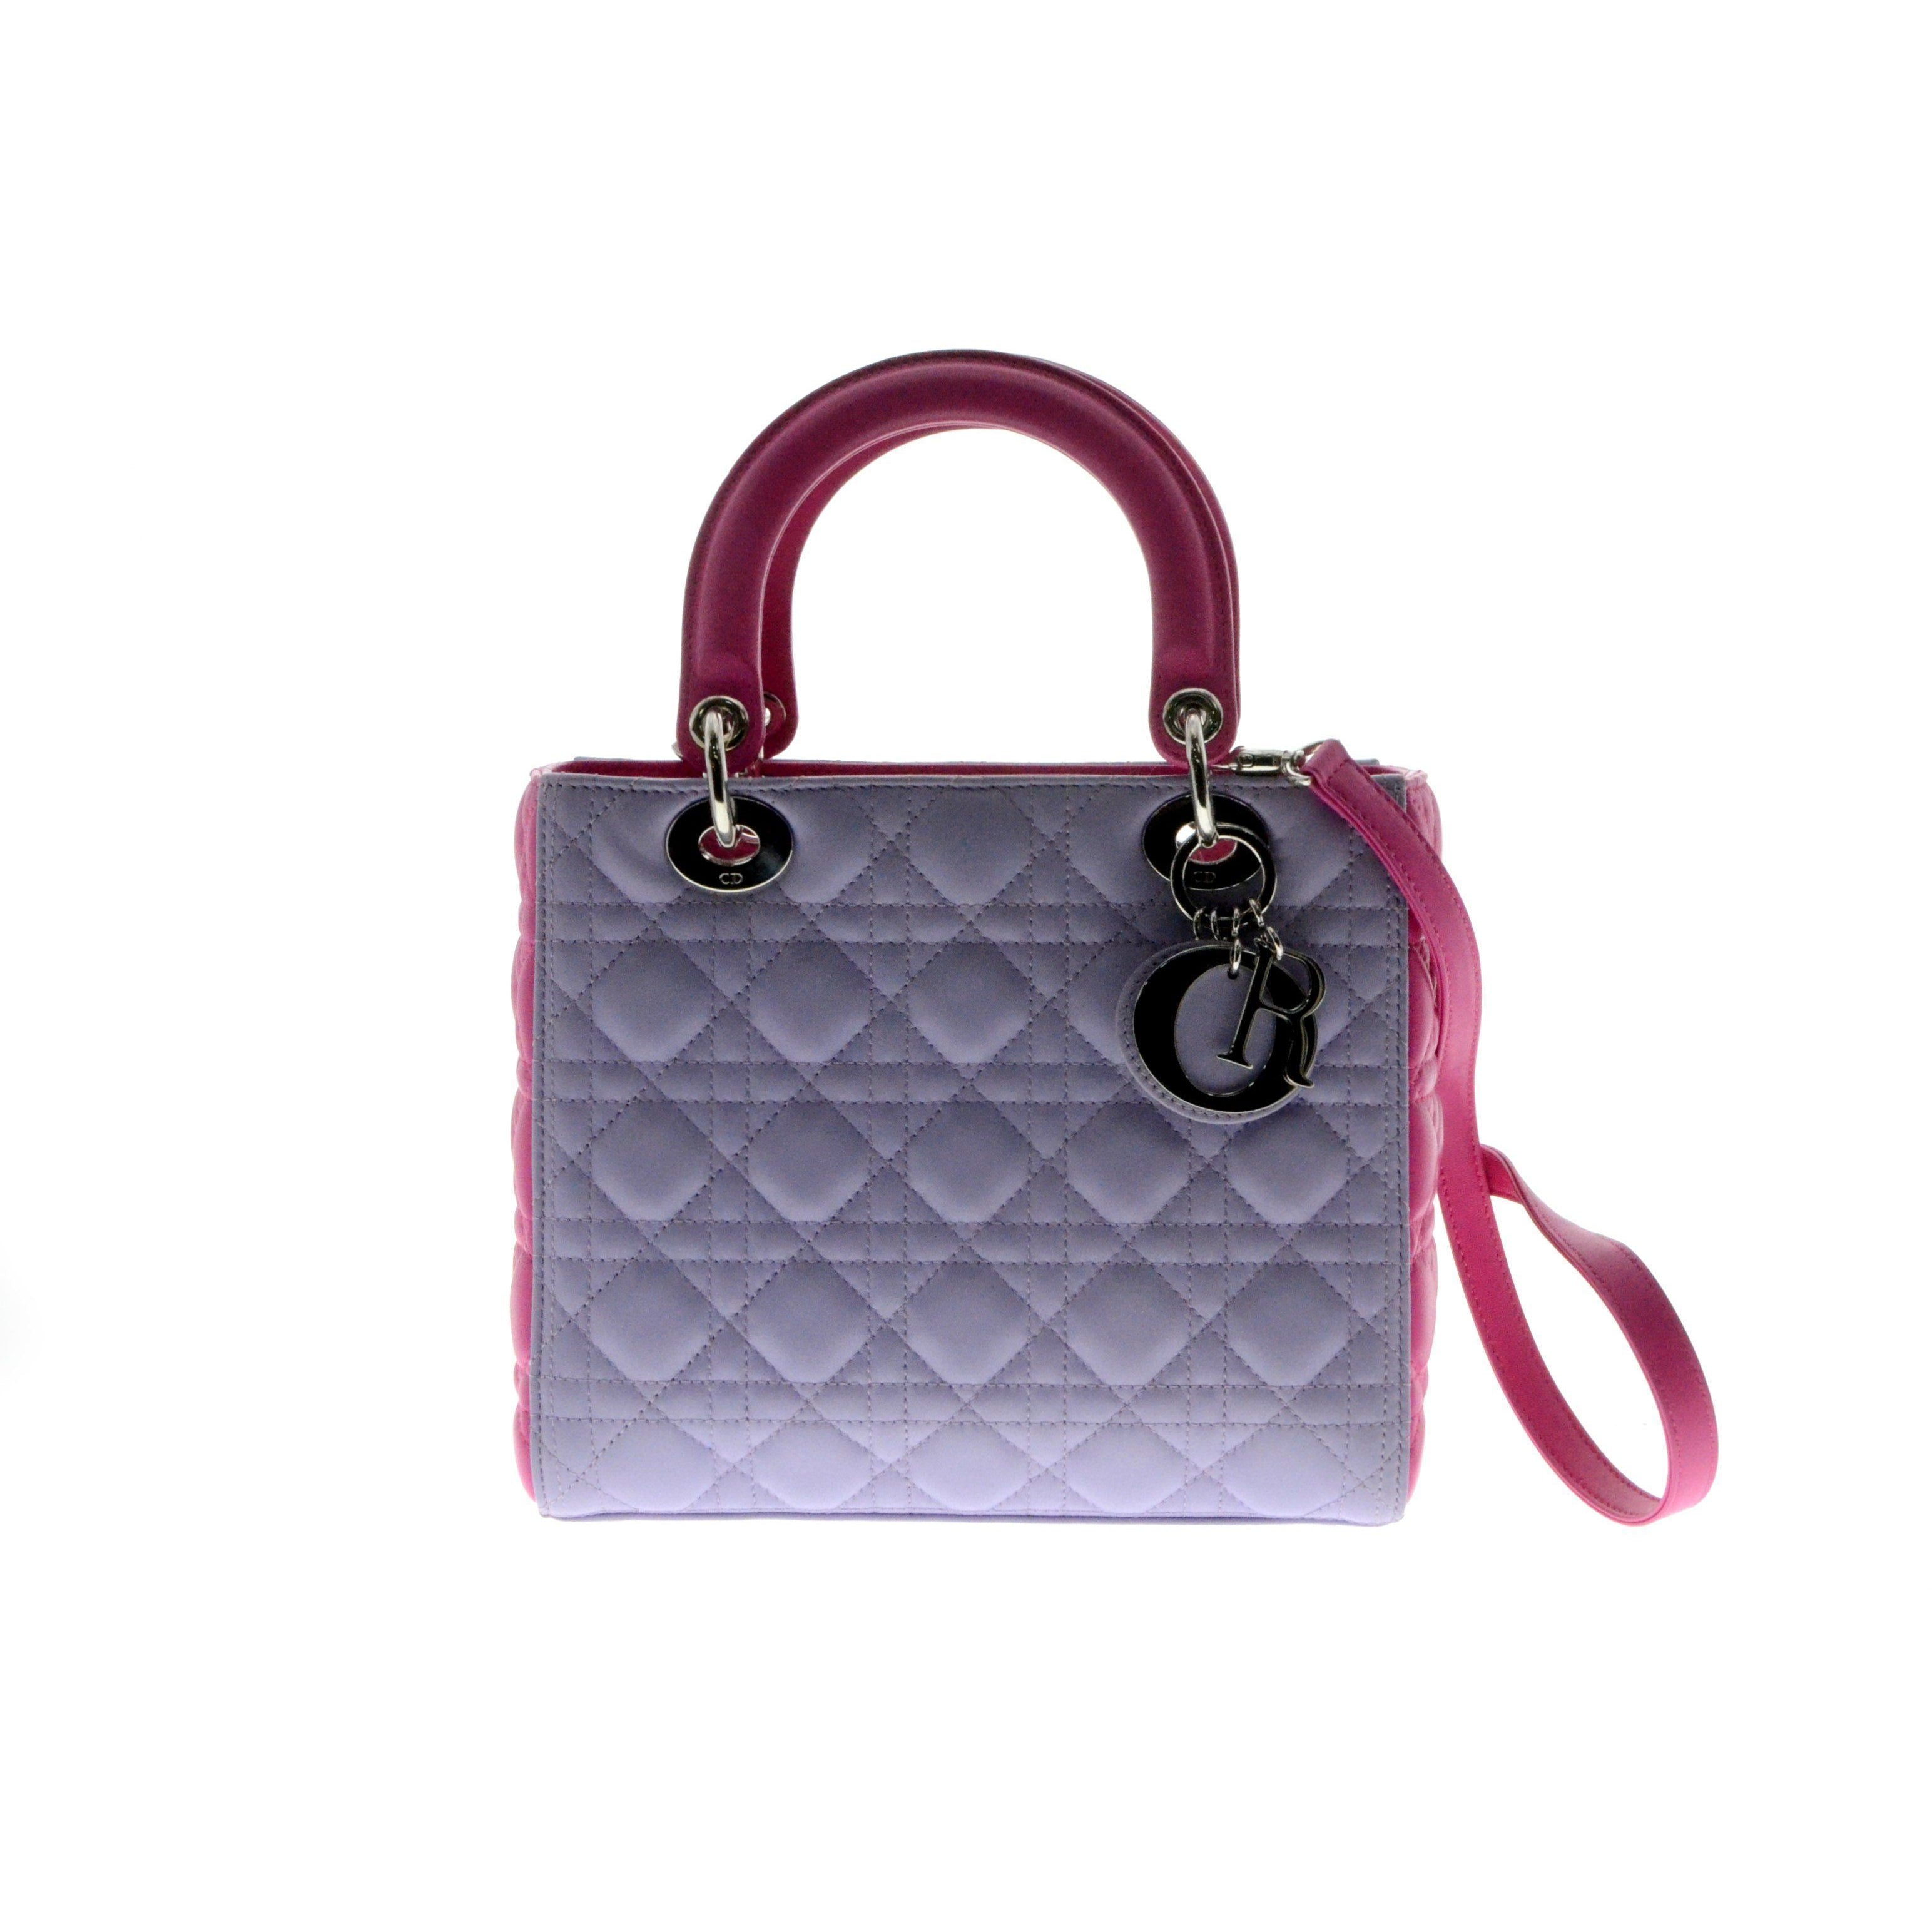 cda595e8fcf Christian Dior LADY DIOR LAMBSKIN BAG Purple & Pink. – The Vintage Contessa  & Times Past